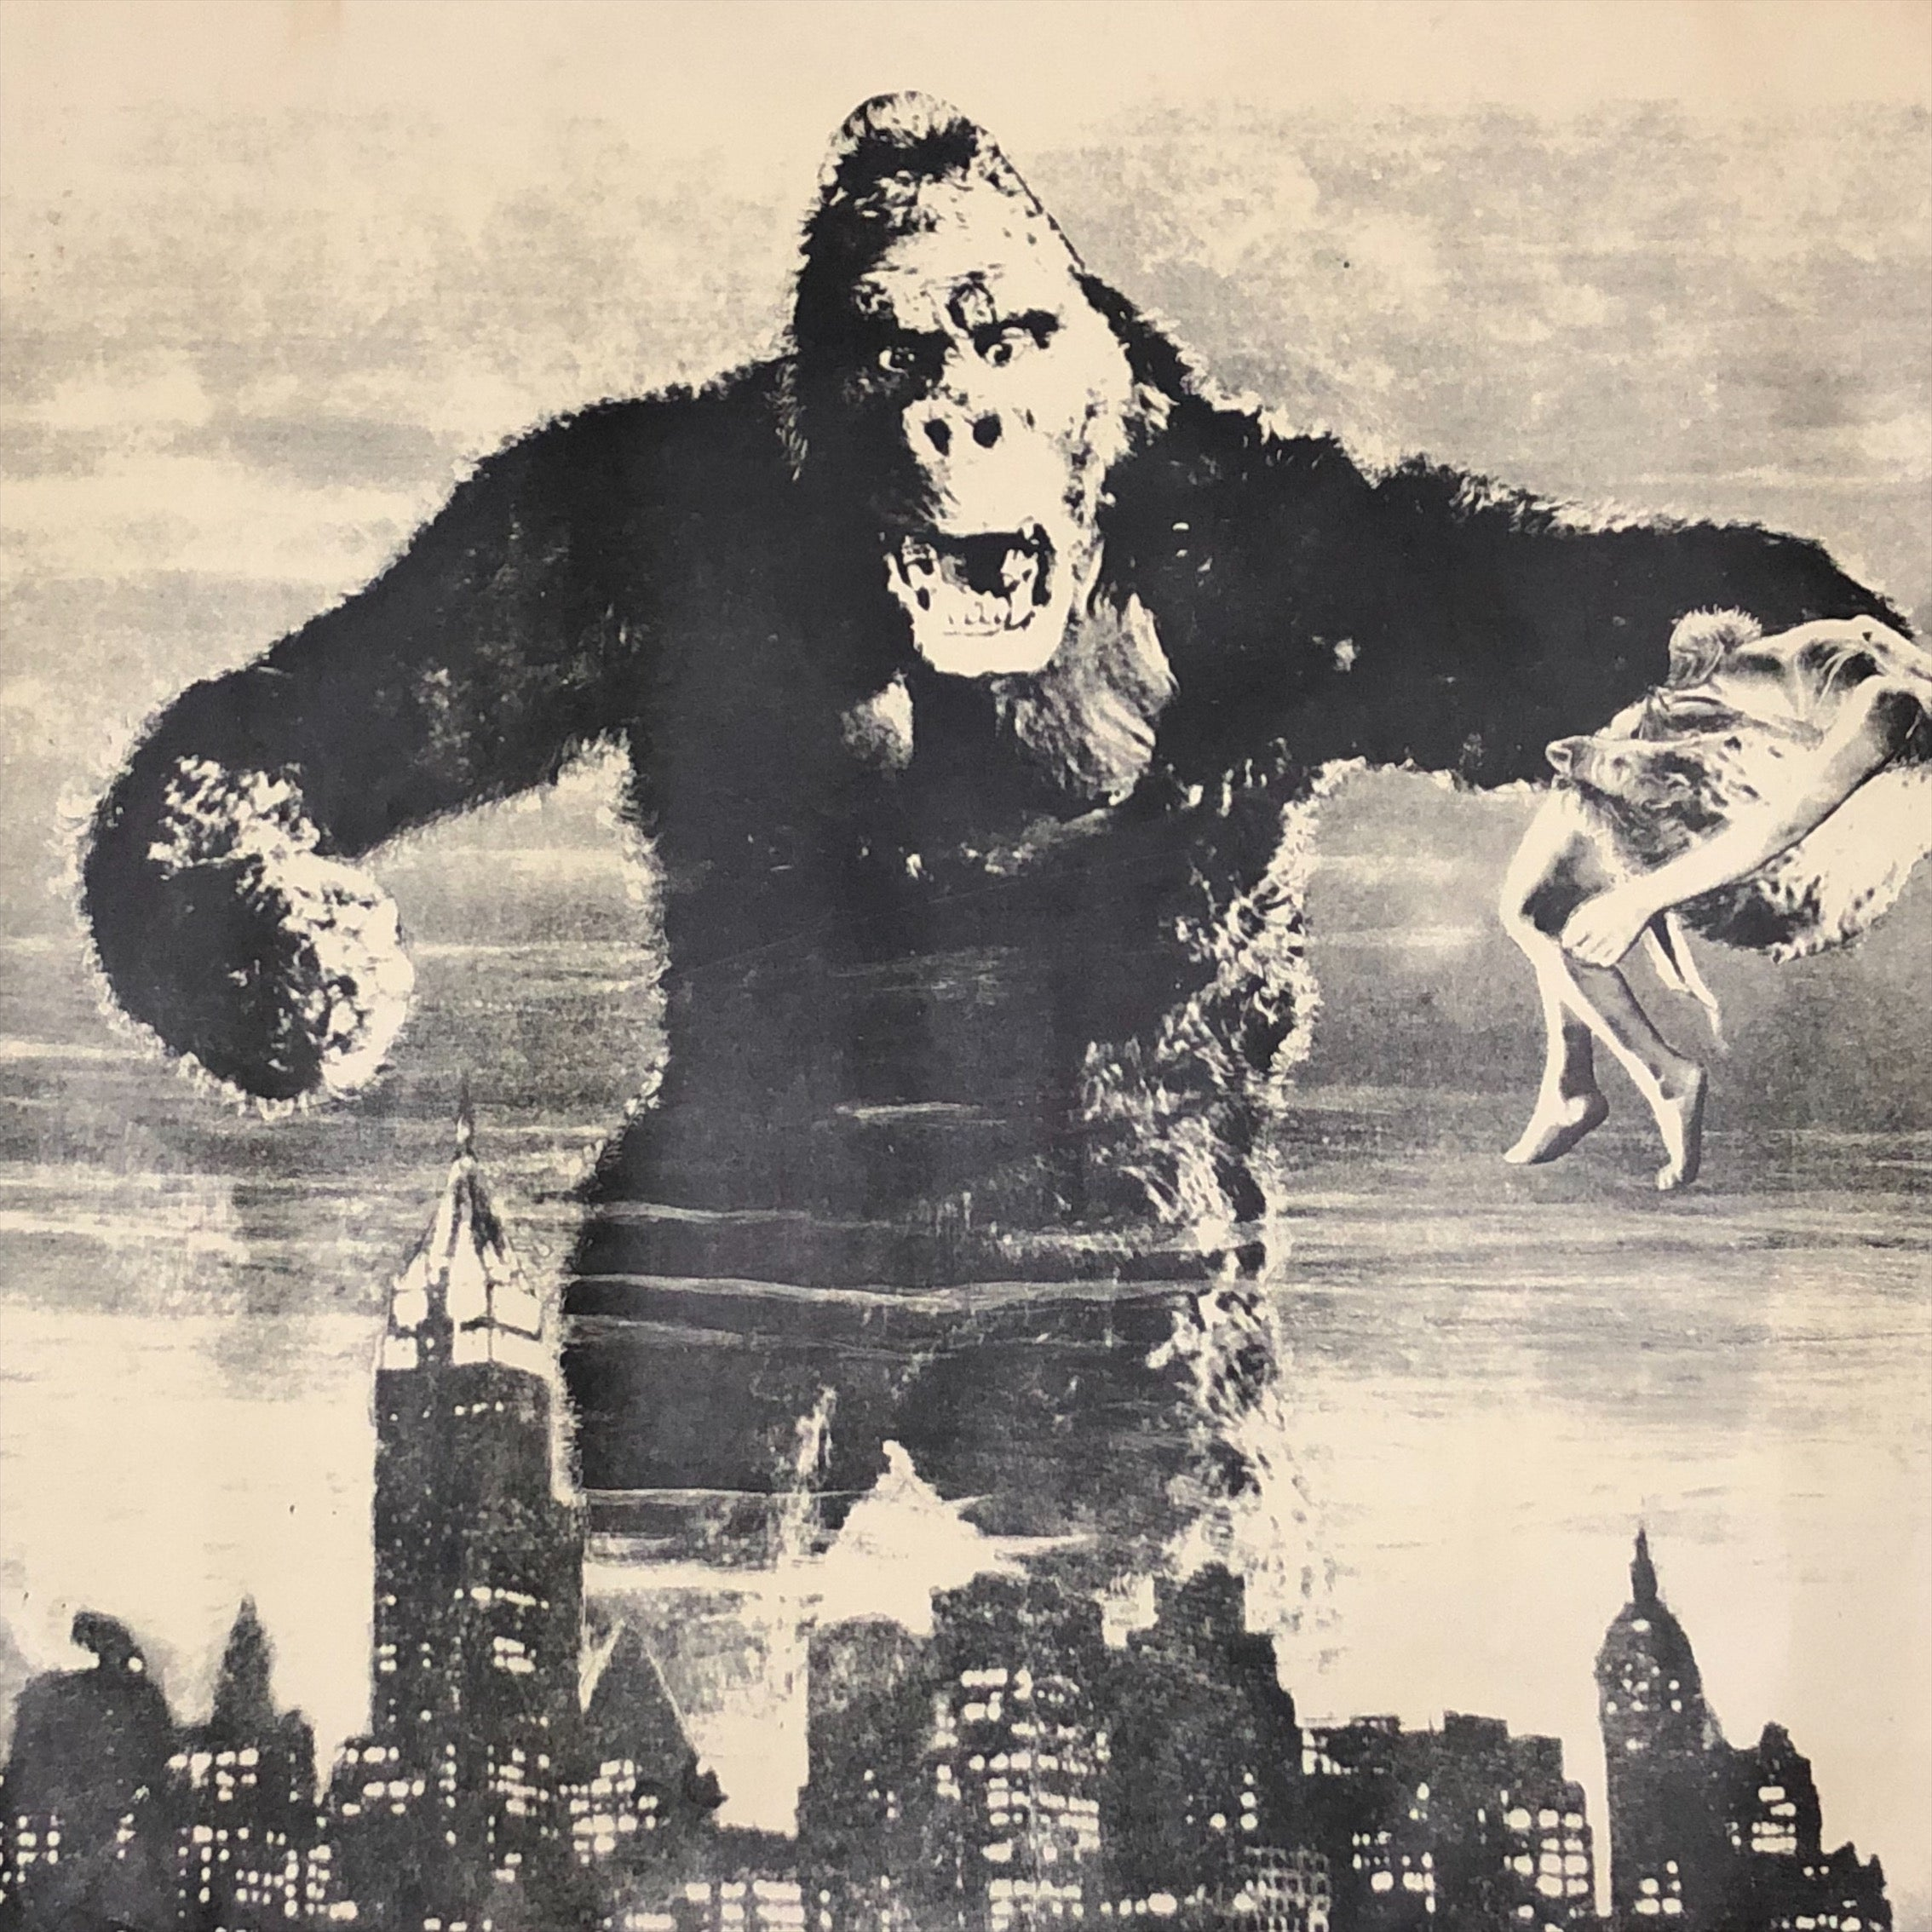 Vintage King Kong Poster from Original 1930s Film - 1960s